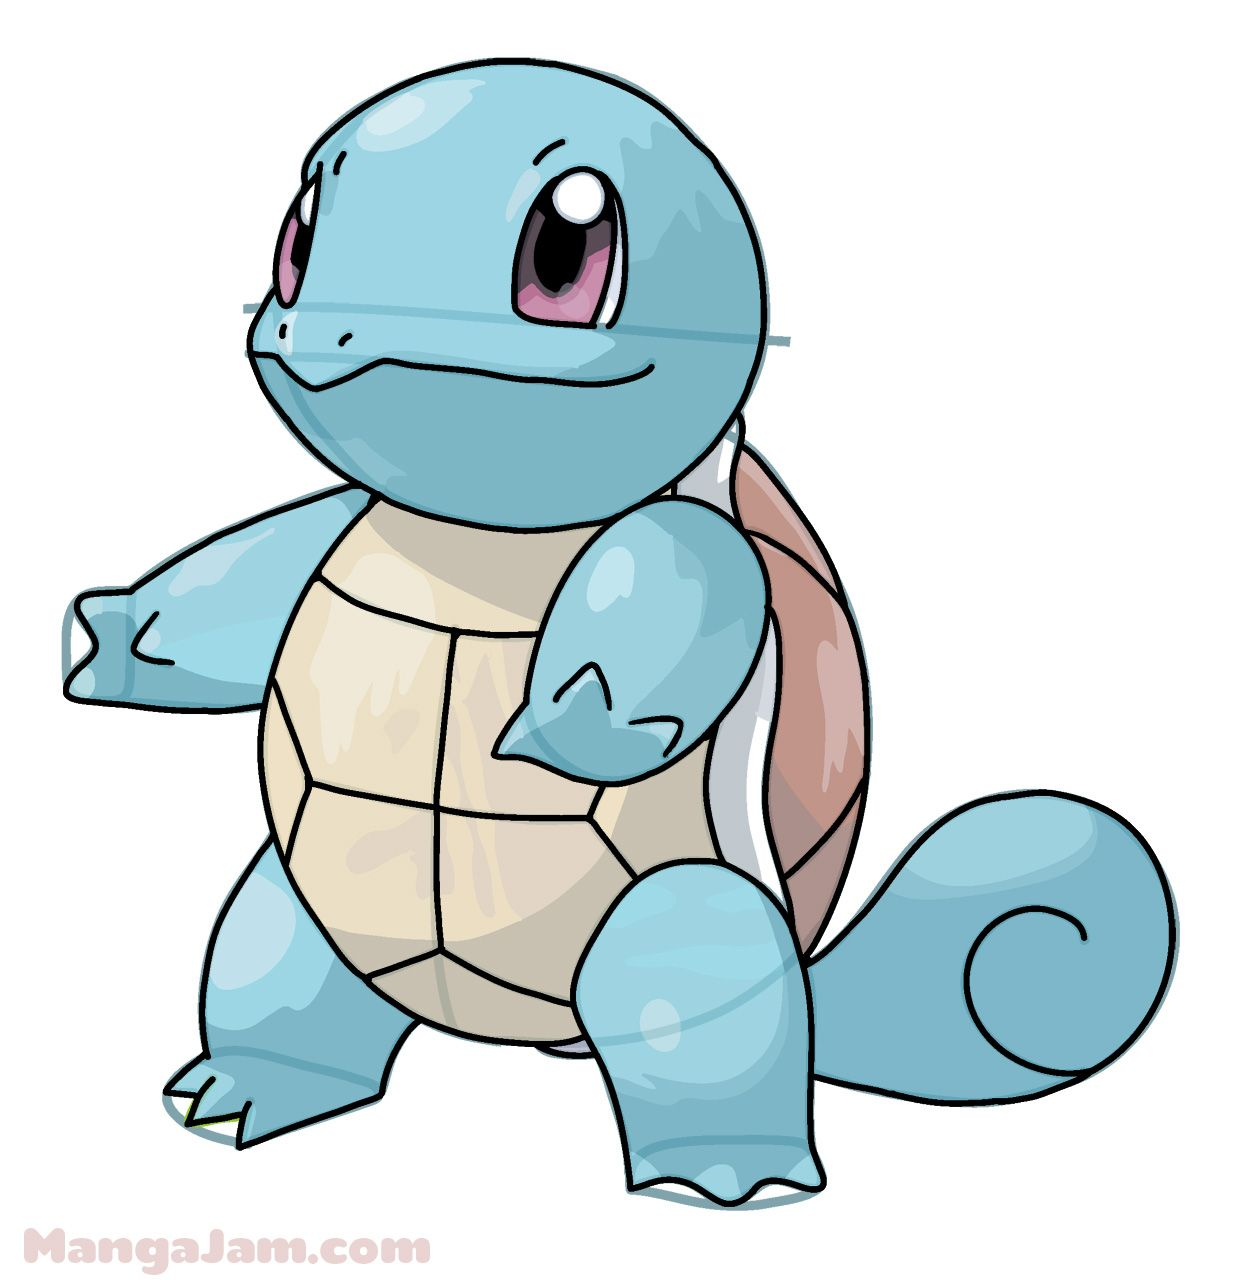 1240x1280 Let's Learn How To Draw Squirtle From Pokemon Today! Squirtle